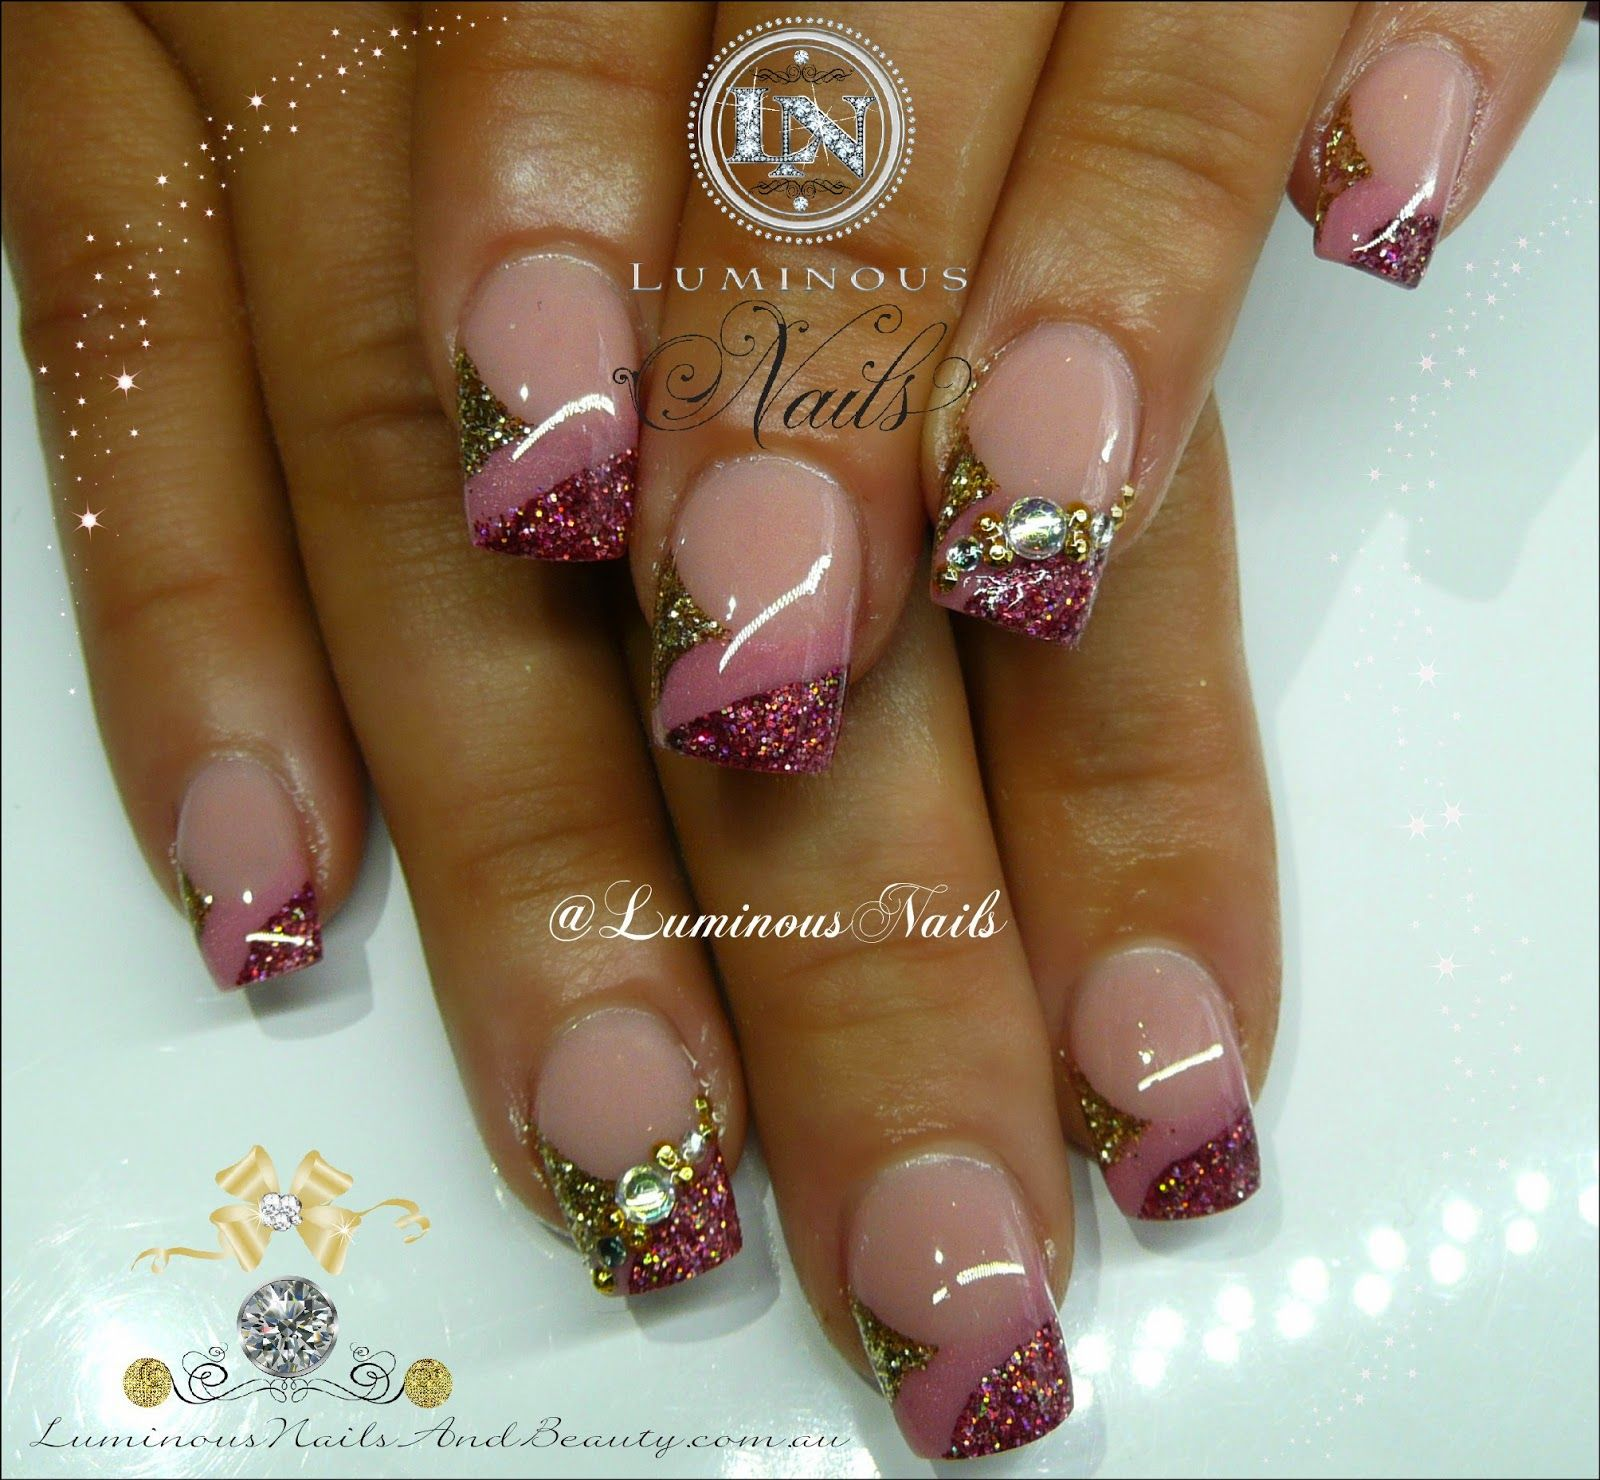 Luminous Nails | Get Nailed | Pinterest | Luminous nails, Pink gold ...